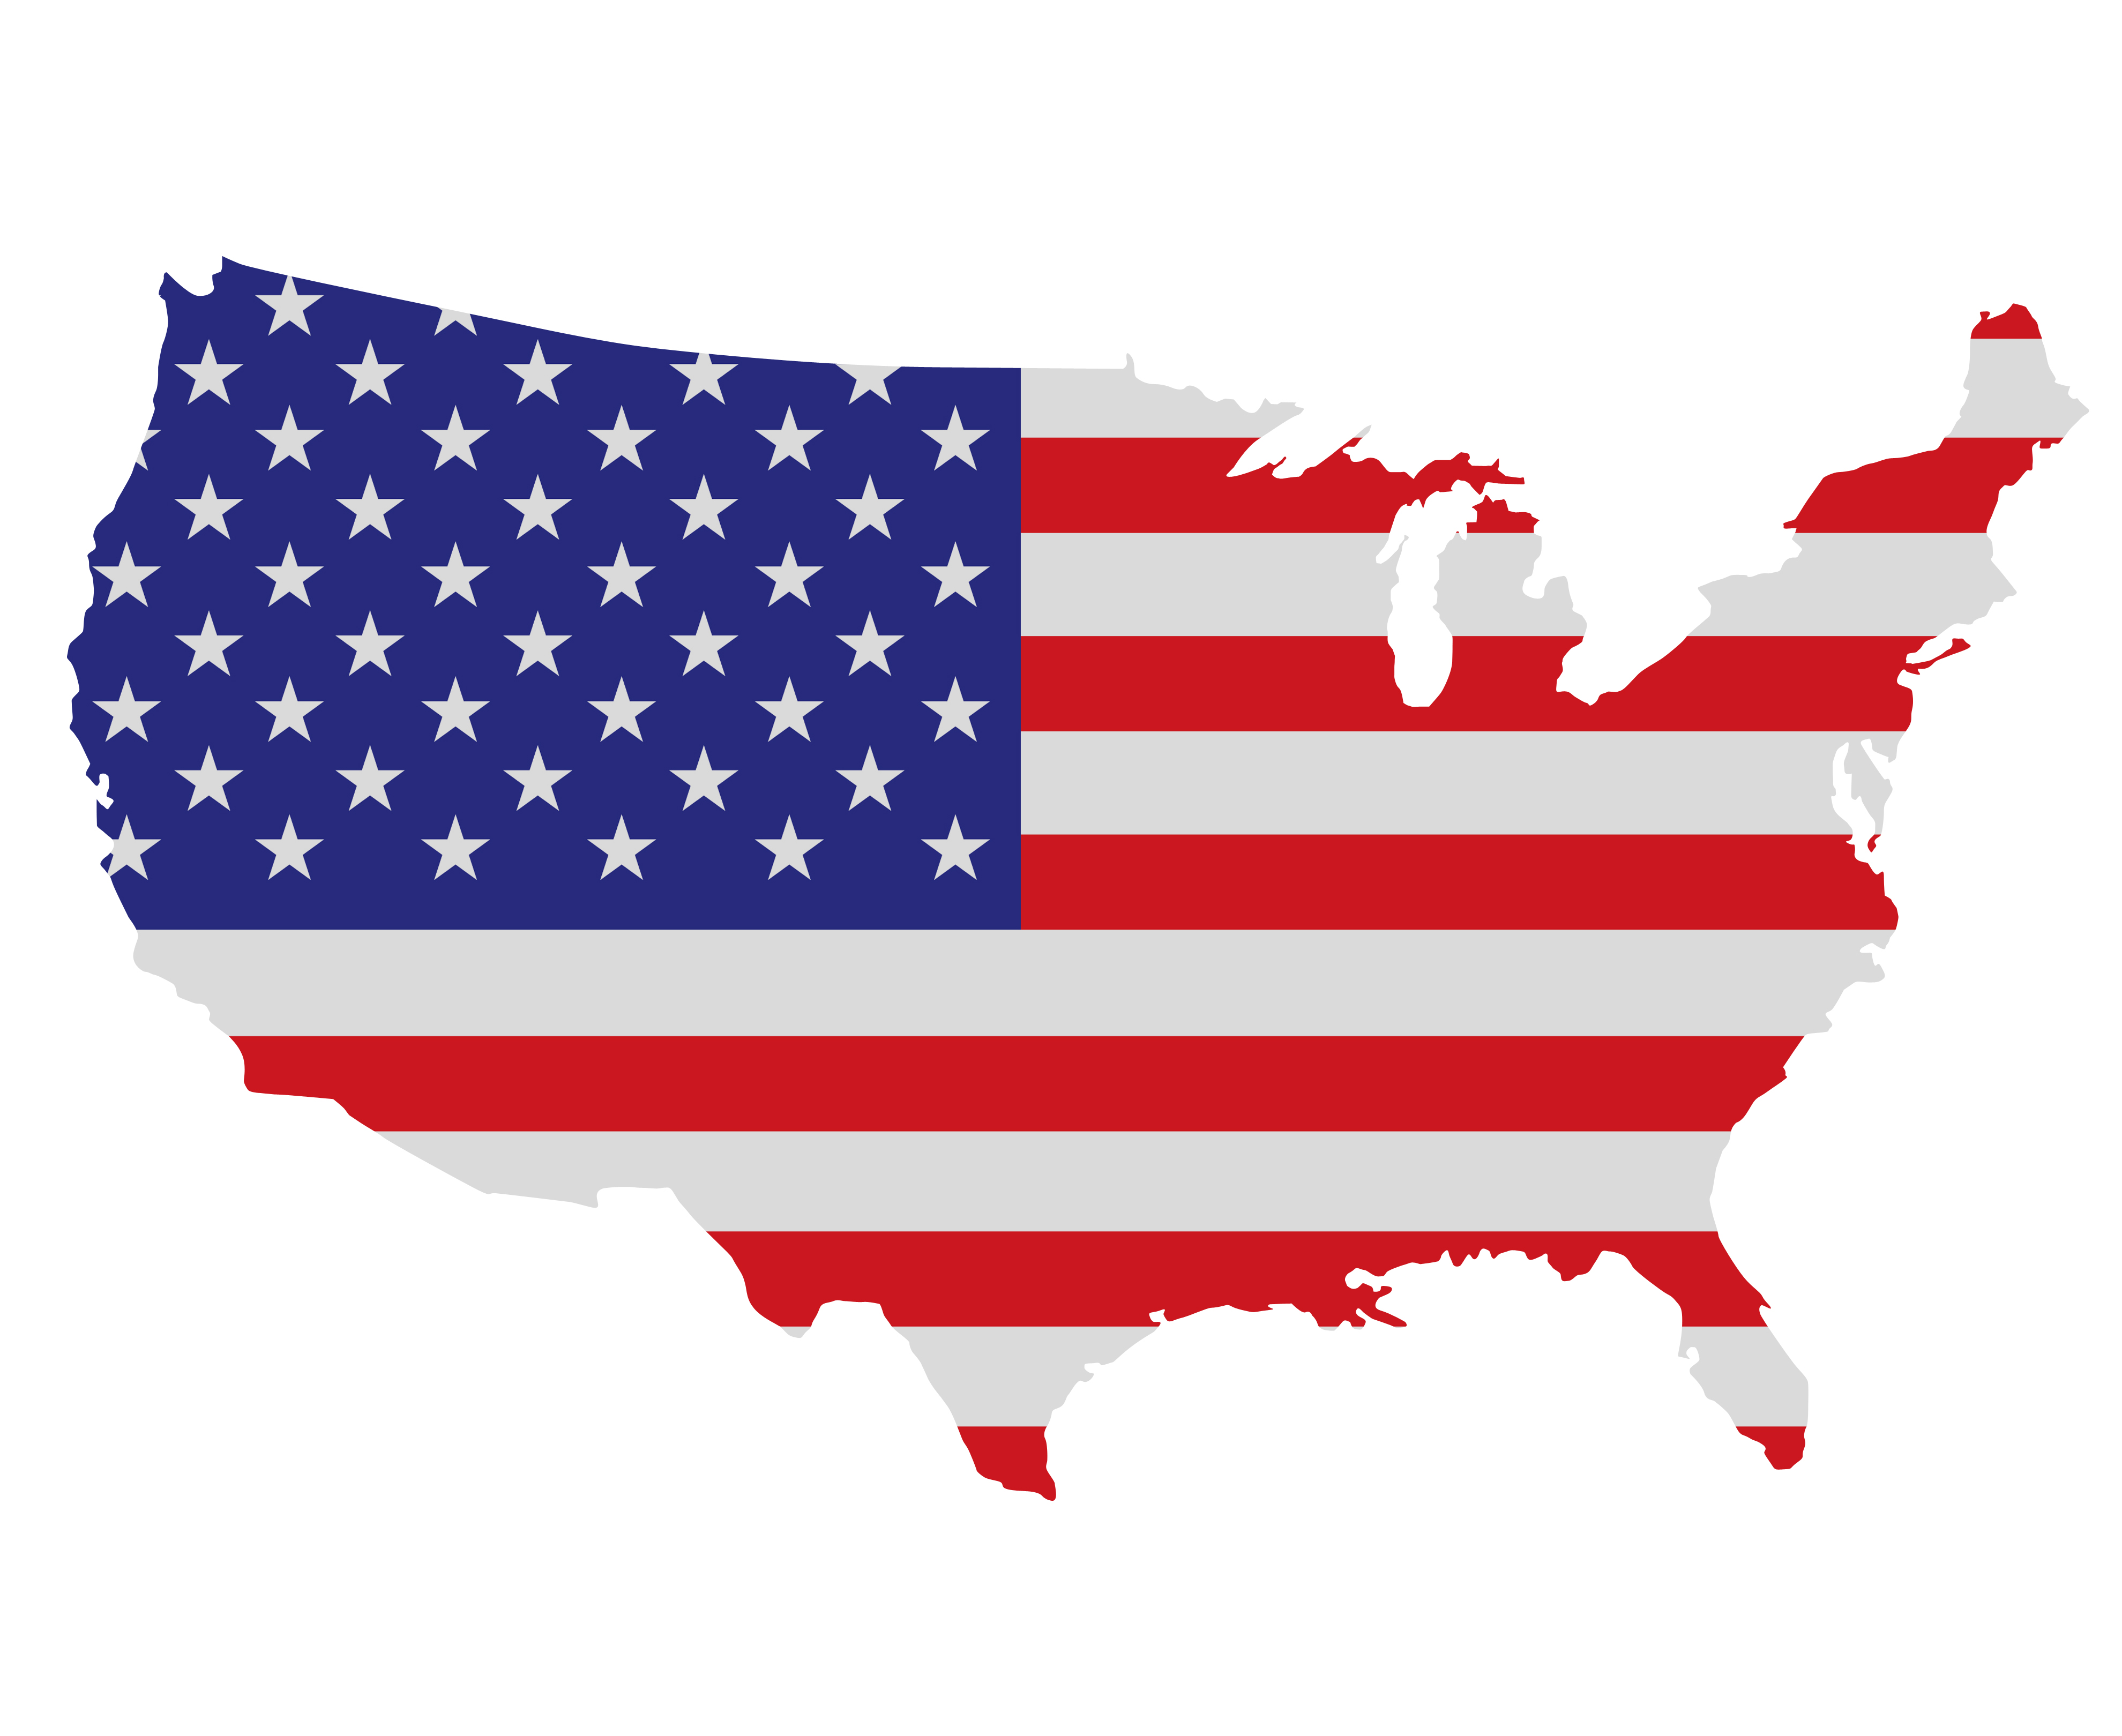 Us map flag clipart picture library download Us map flag clipart - ClipartFest picture library download